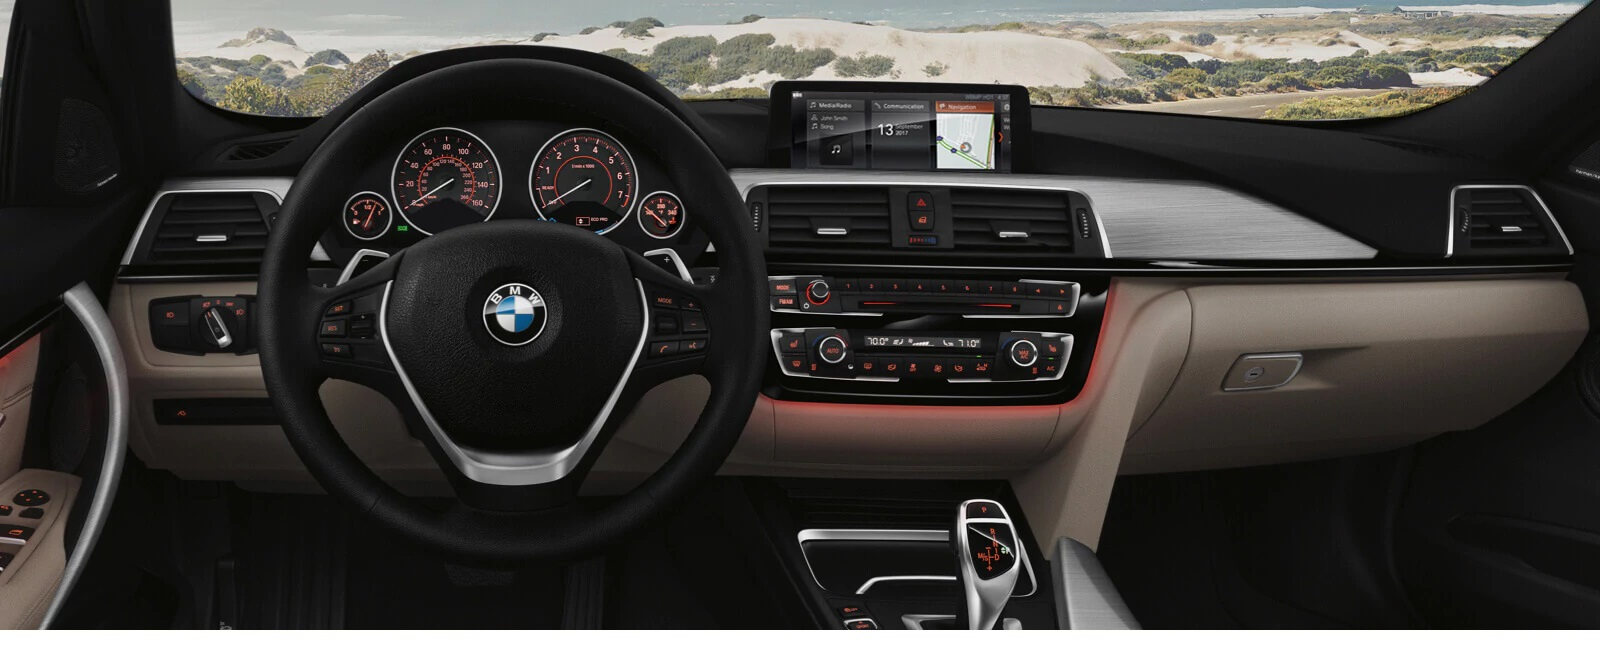 Interior of the BMW 3 Series